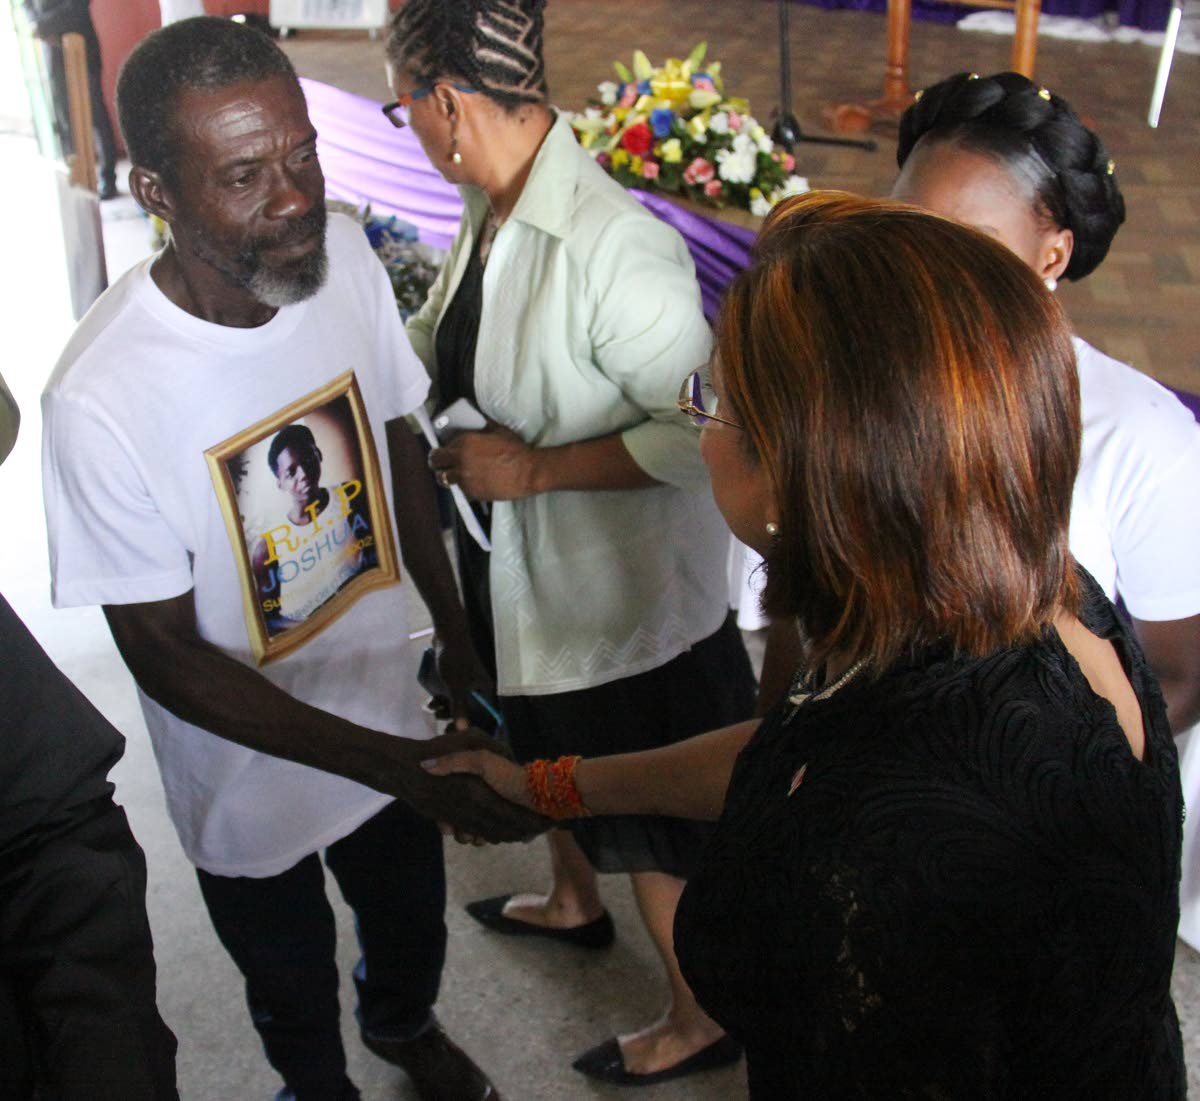 Opposition Leader Kamla Persad-Bissessar is greeted at the funeral of Joshua Andrews by his father Tony at the Transport and Industrial Workers Union hall, Eastern Main Roadm Laventille.